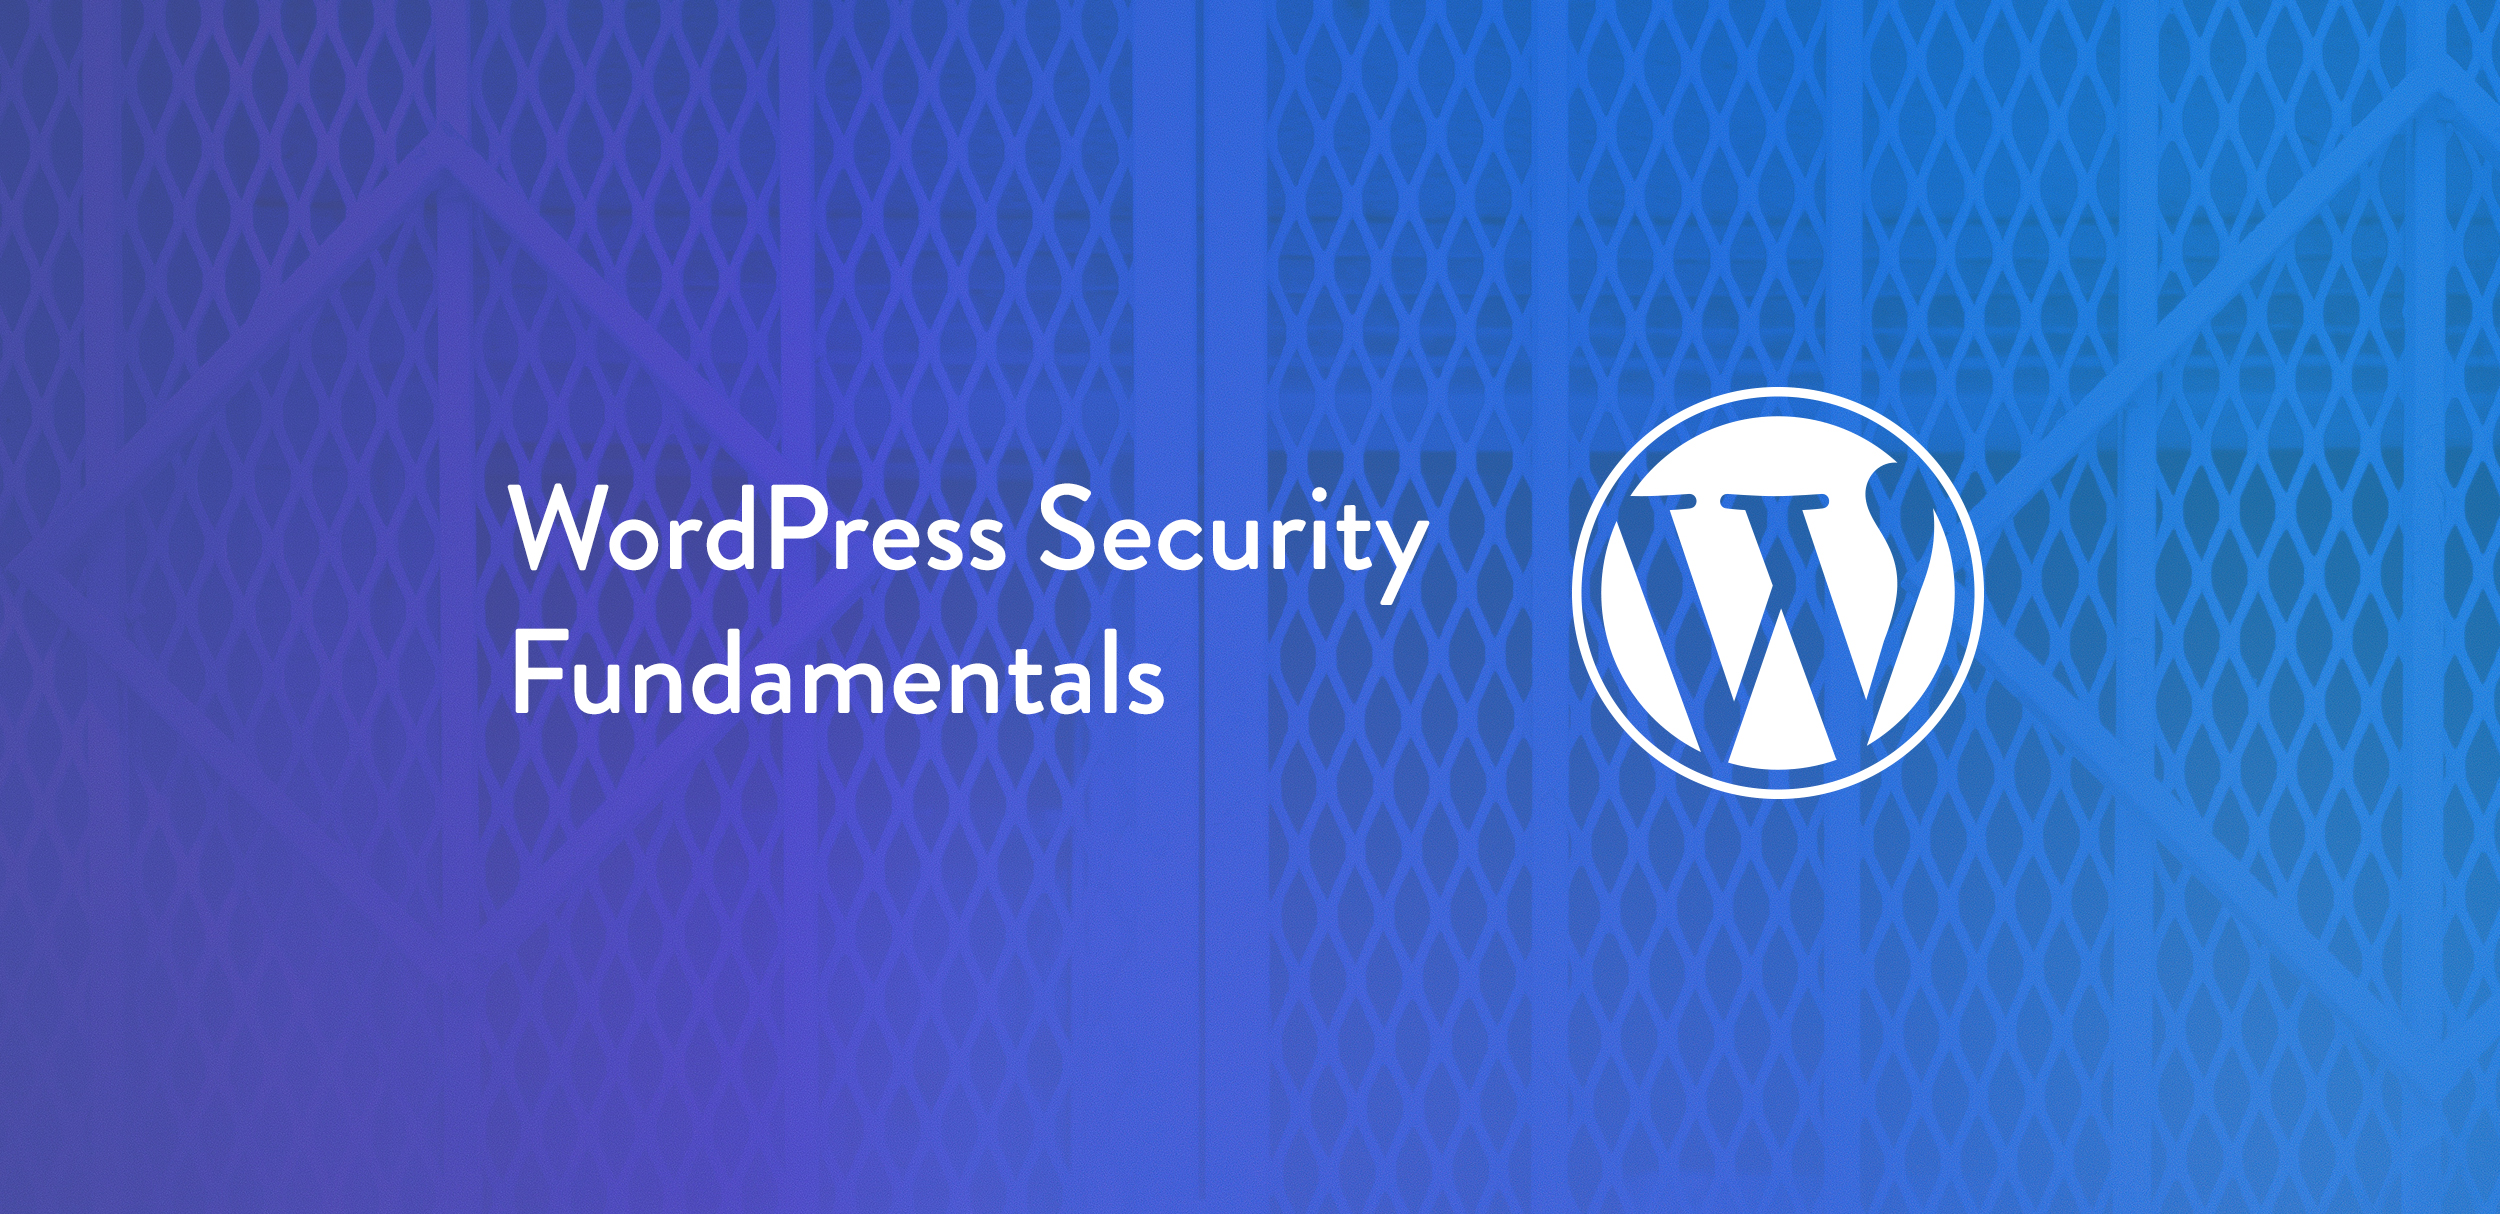 WordPress Security Fundamentals: How to Not Get Hacked